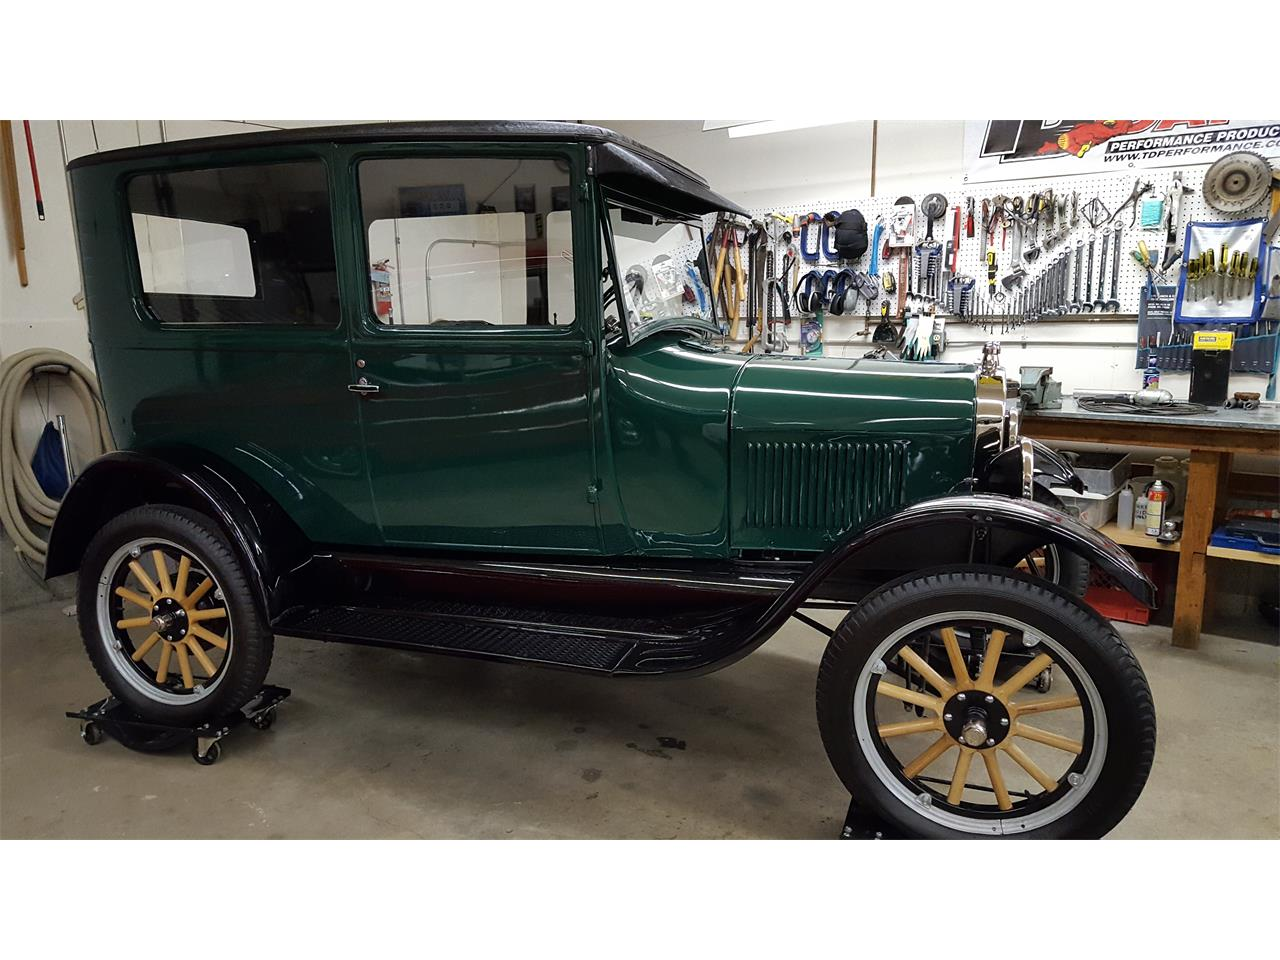 Large Picture of '26 Ford Tudor located in British Columbia - $22,500.00 - KKUL